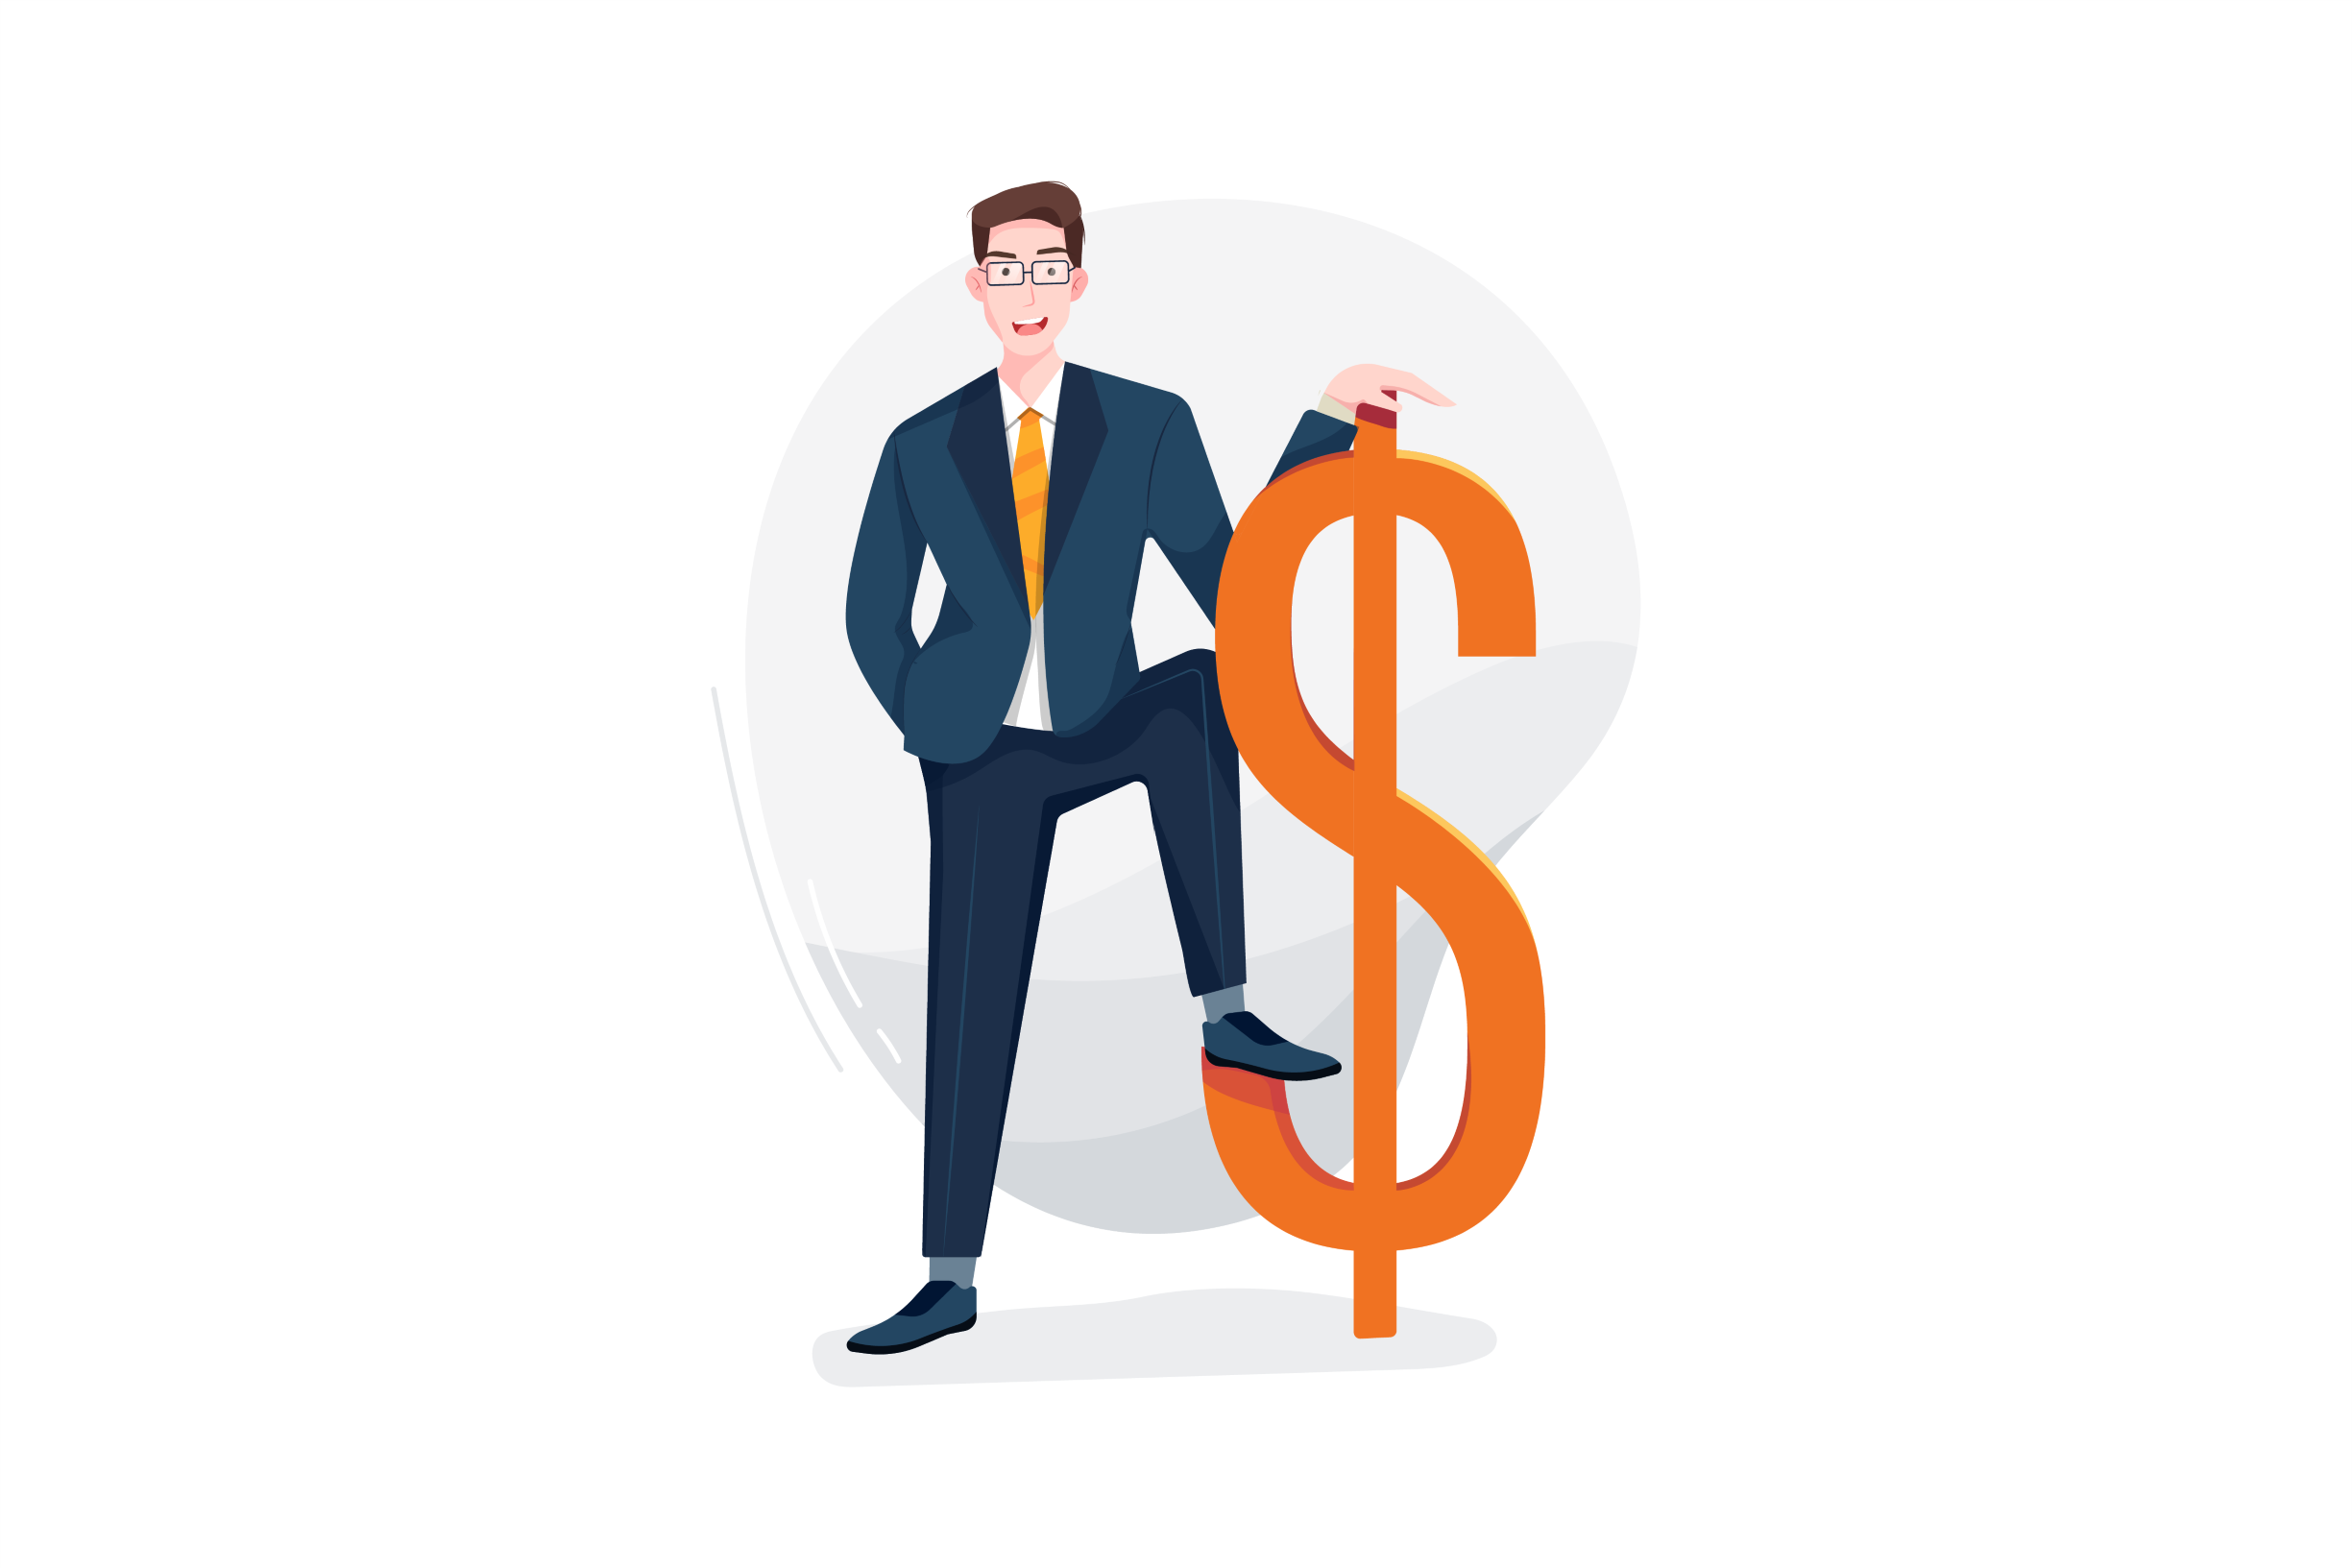 Graphic of a man in a suit standing holding a money sign